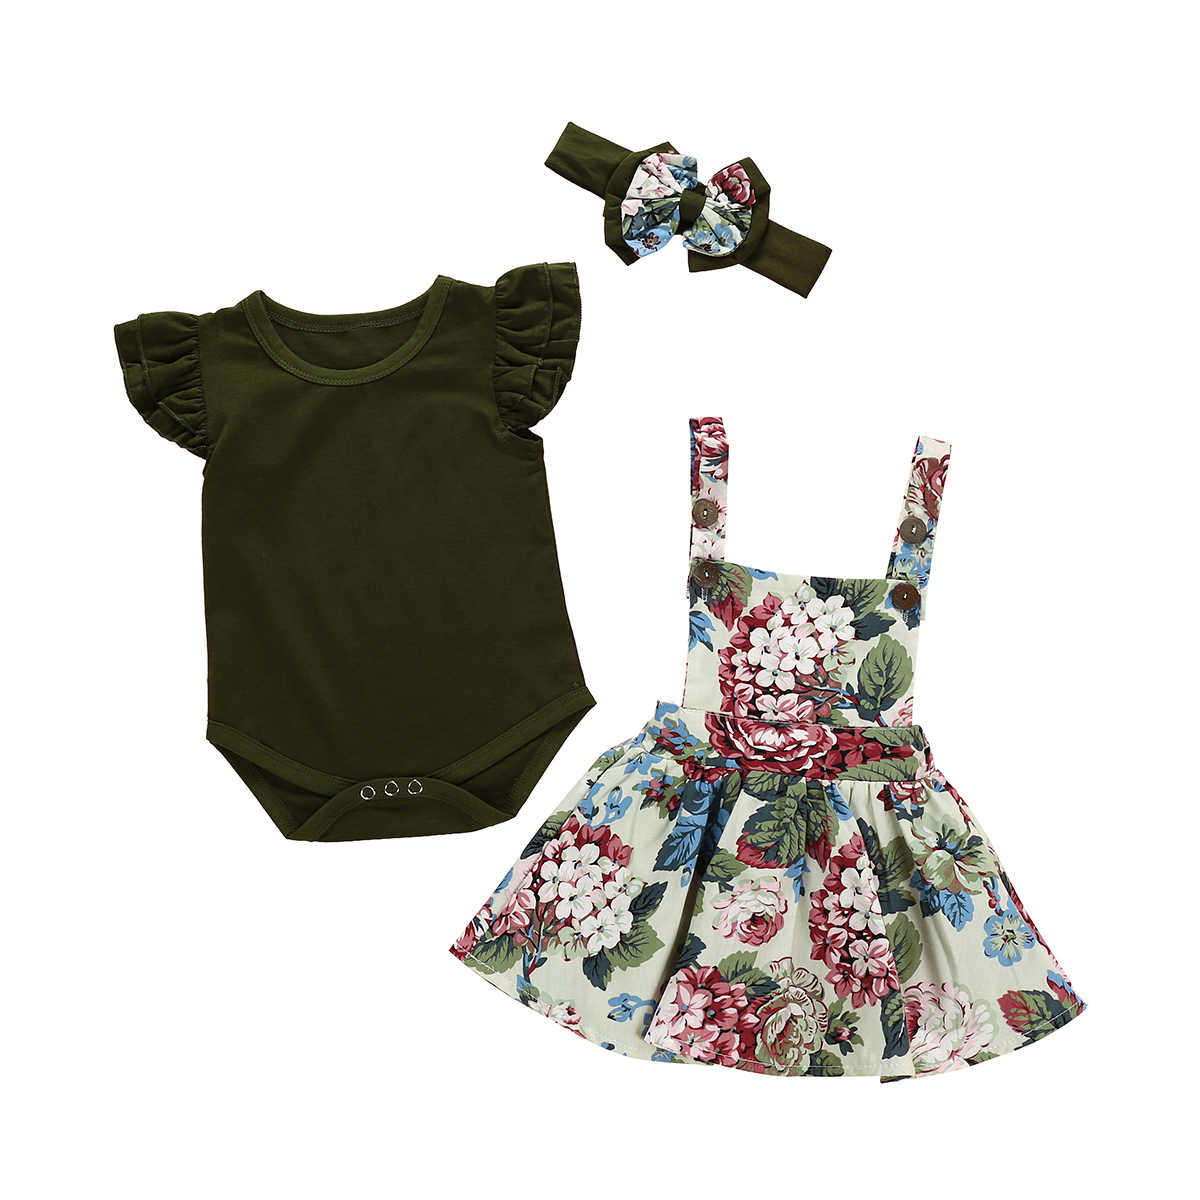 puseky 2pcs//Set Kids Baby Girl Leopard T-Shirt Bowknot Shorts Fashion Outfits Suit